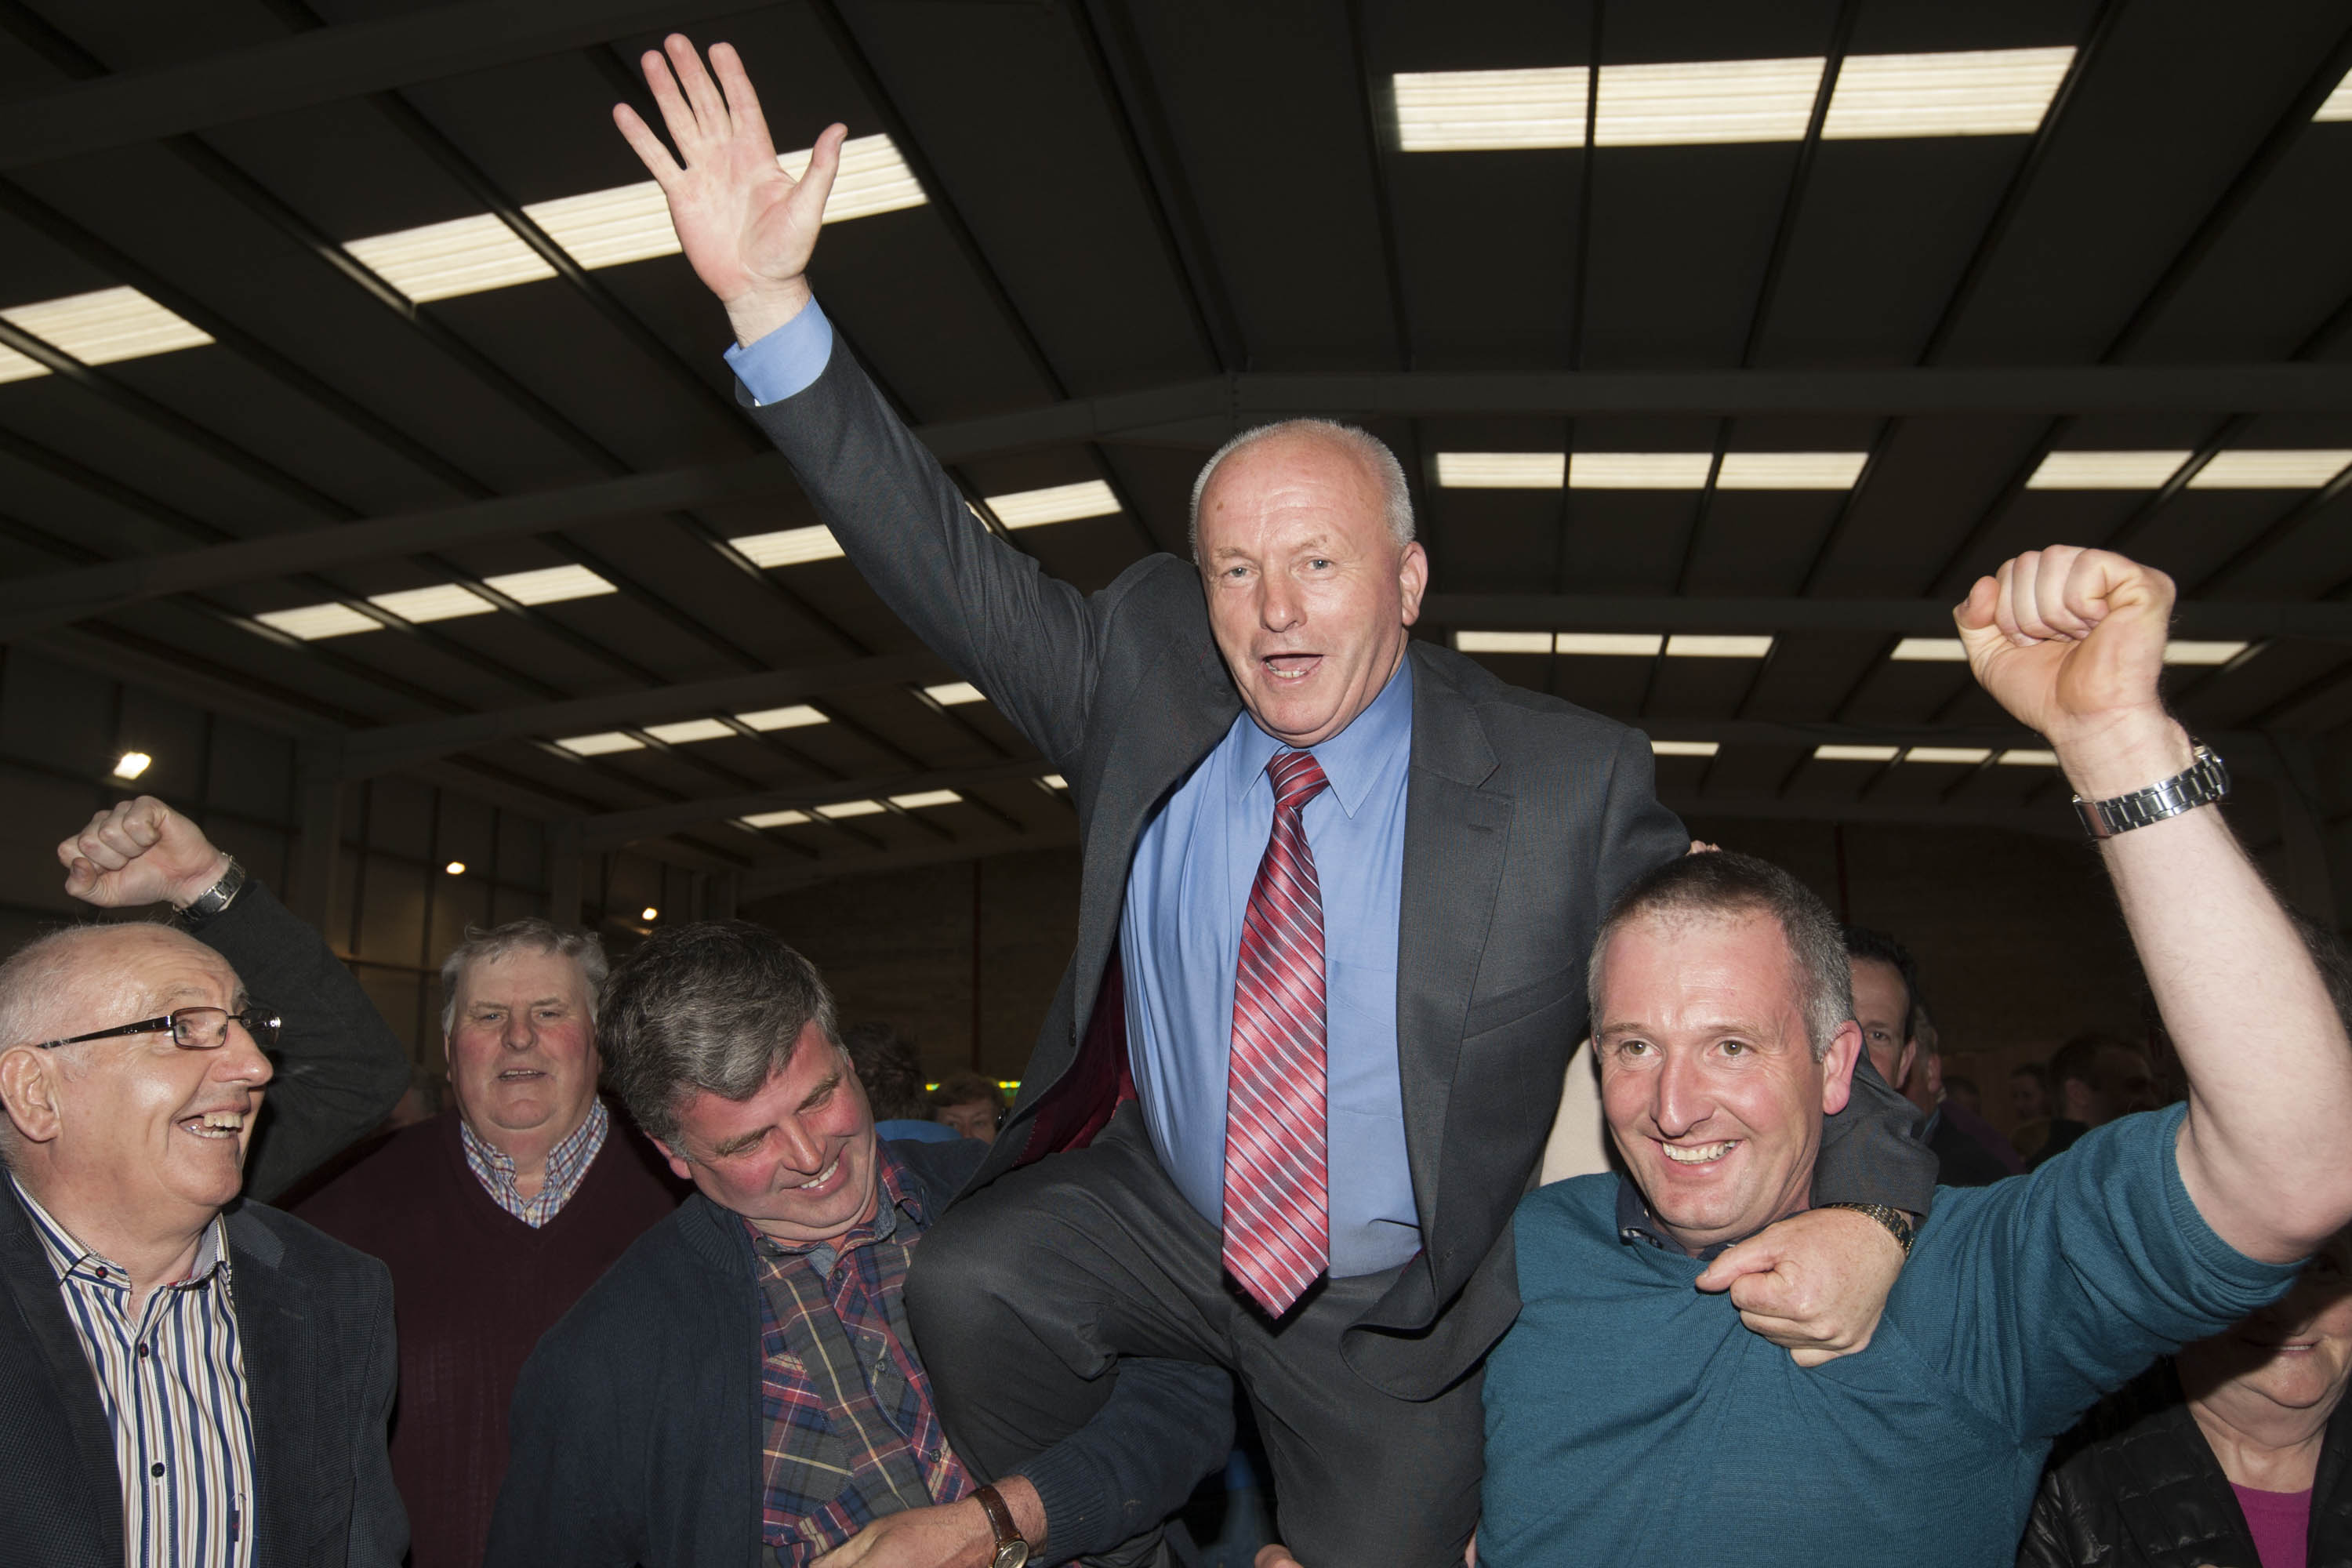 Celebrating his election at the 2014 count